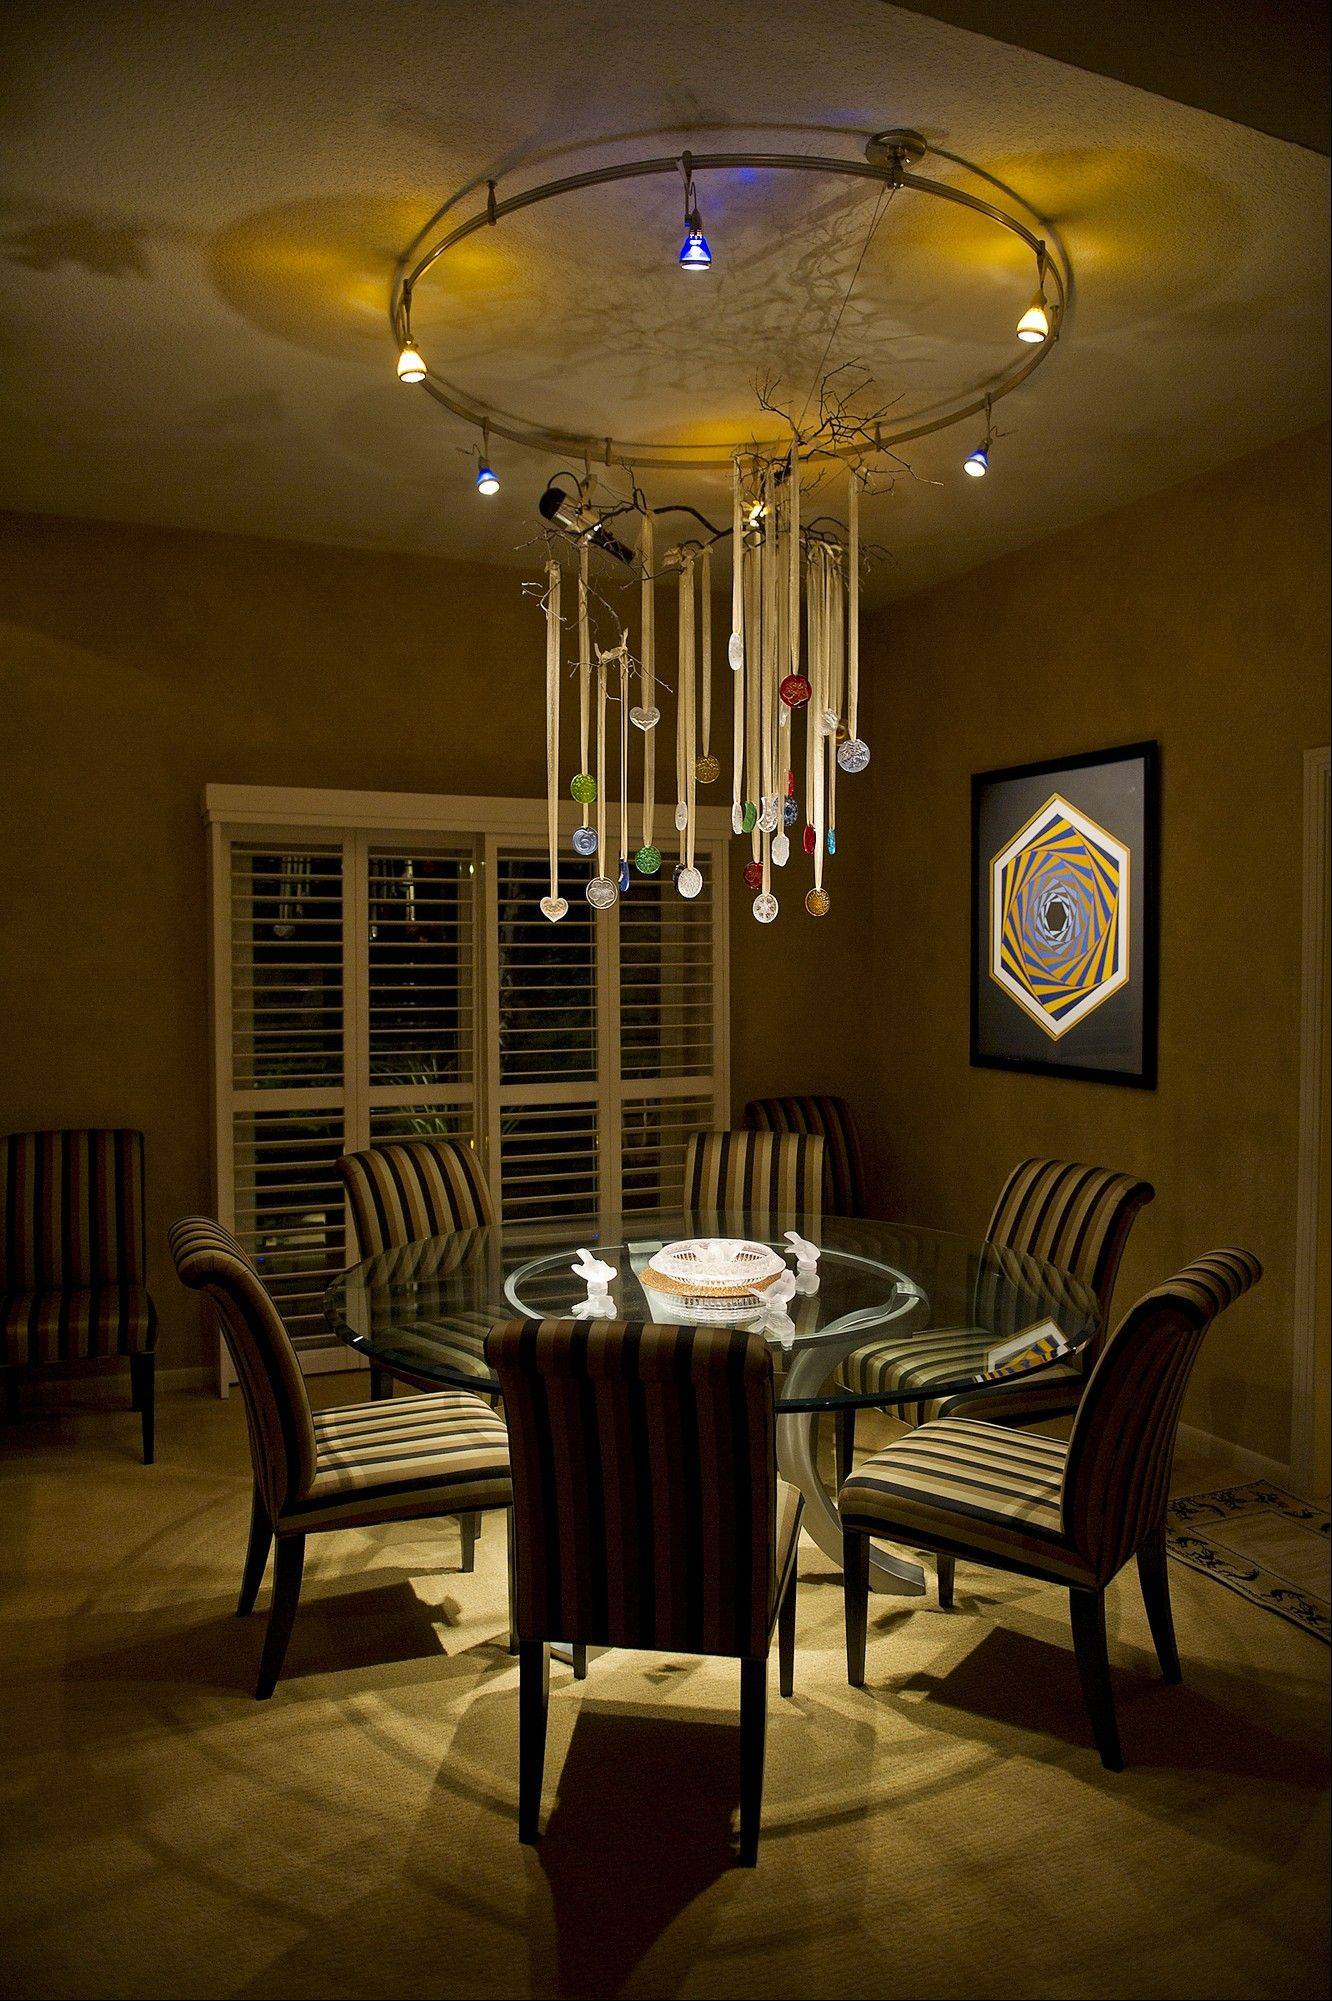 Crystal ornaments catch the illumination from LED and halogen lights in this chandelier designed by Michael Sestak.